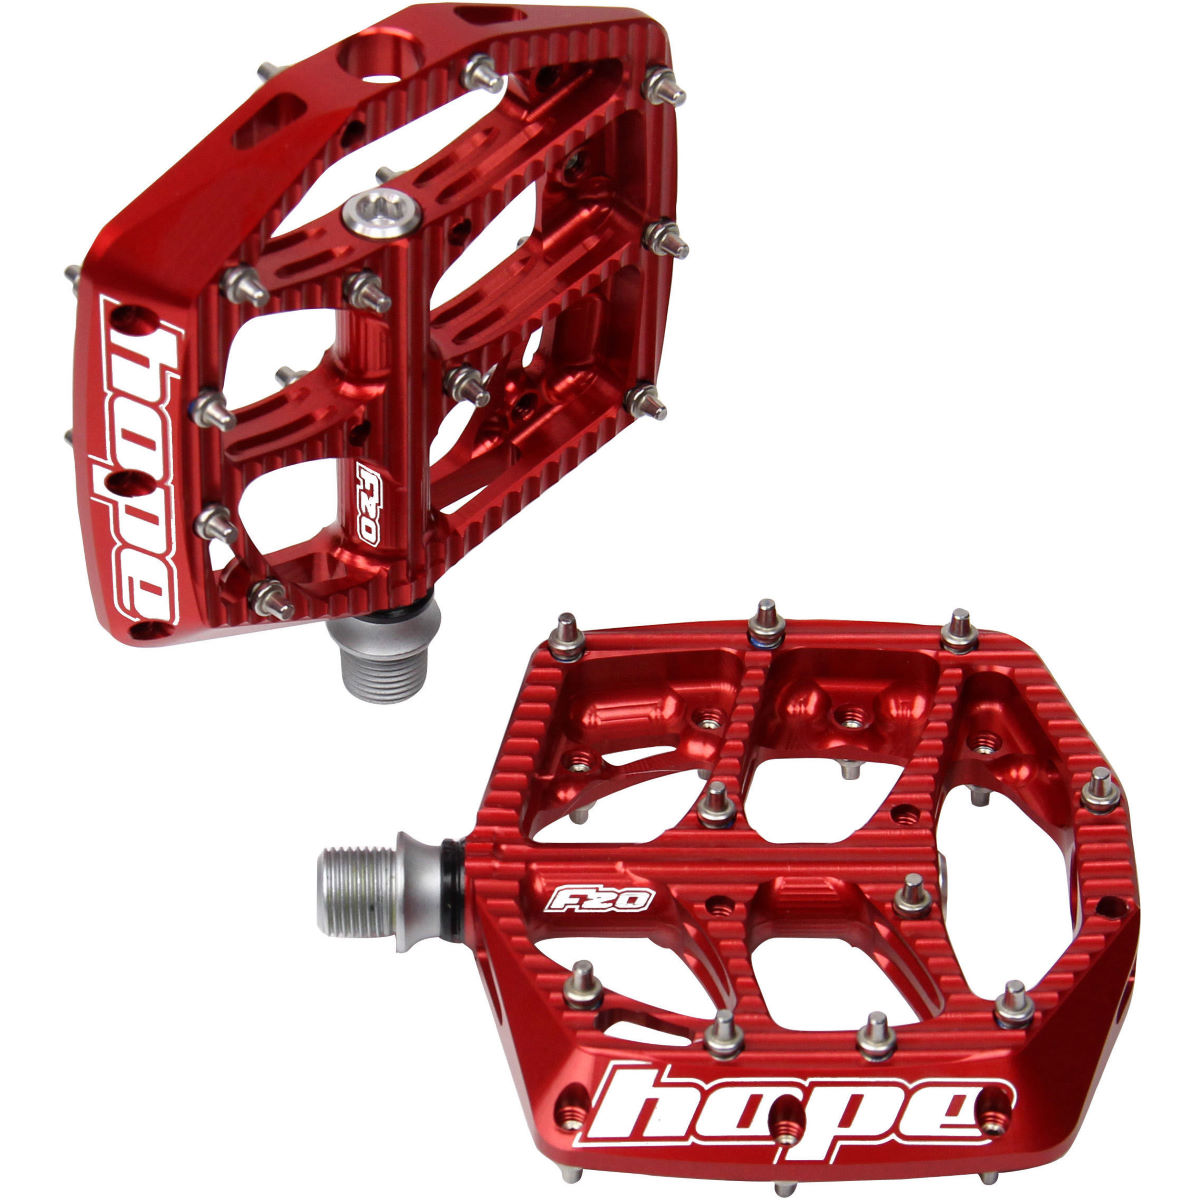 Hope F20 Pedals - One Size Red  Flat Pedals